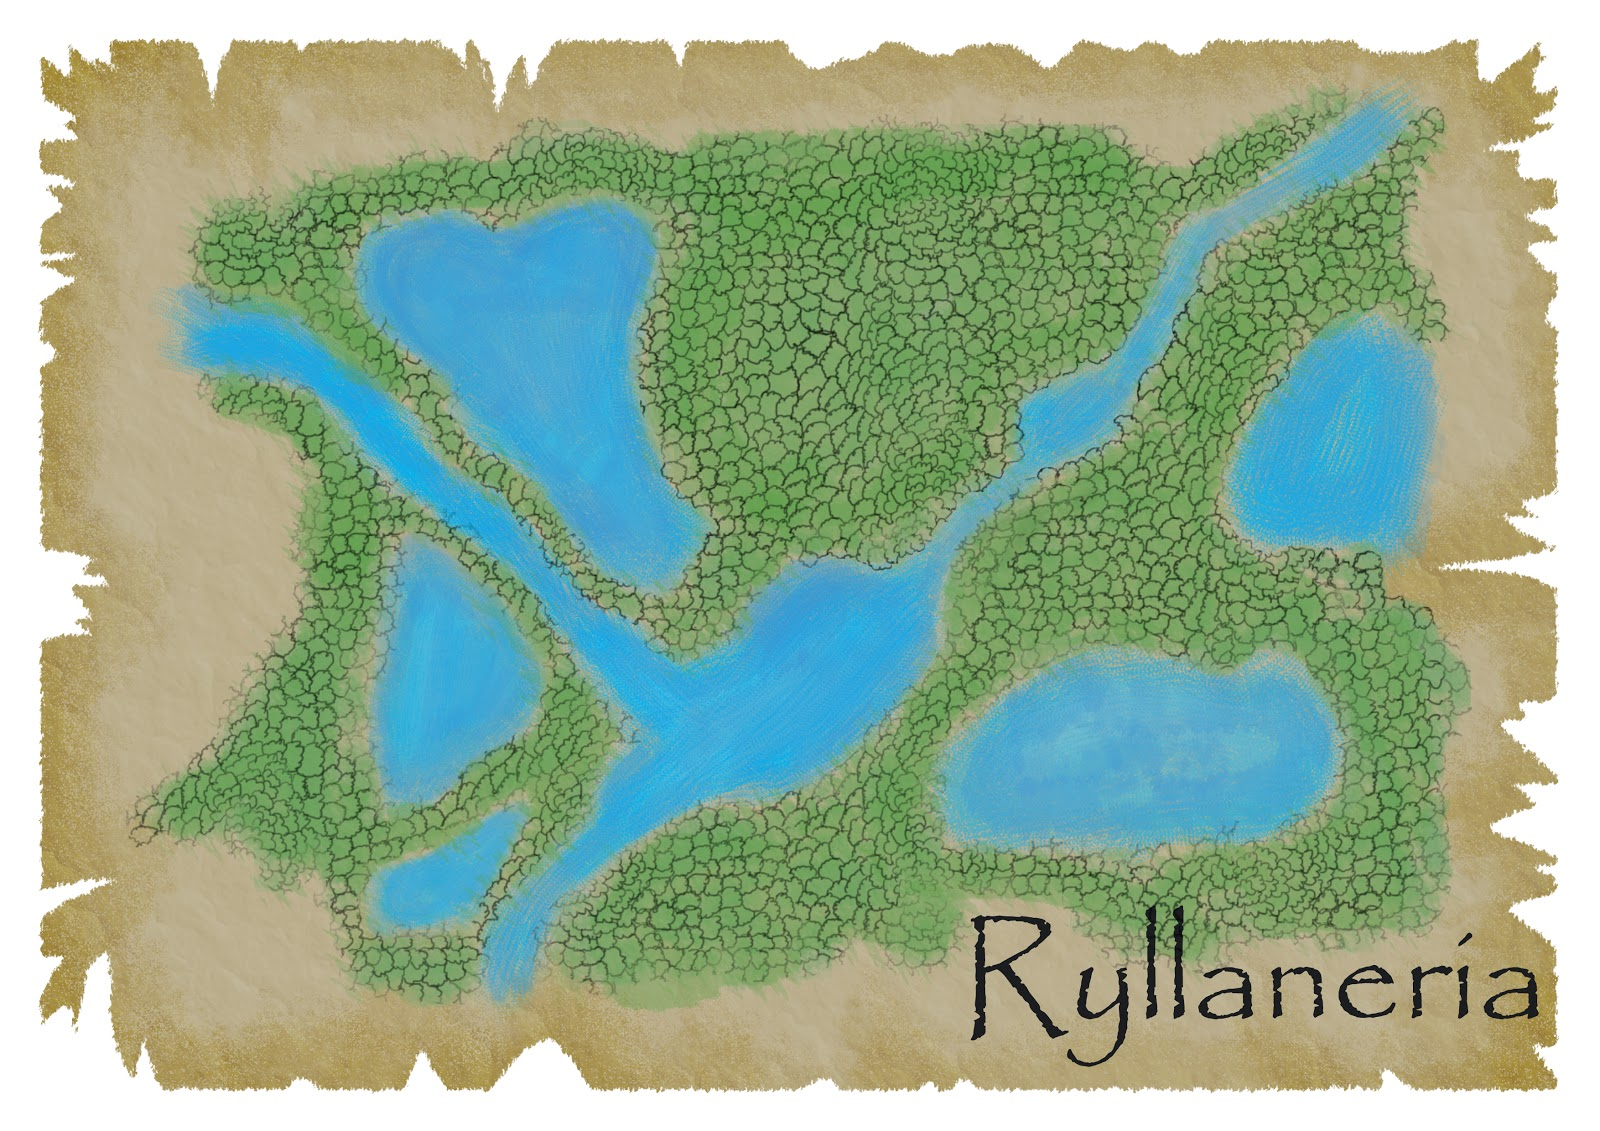 there is a spelling mistake on the map rhyllanaria is the correct spelling